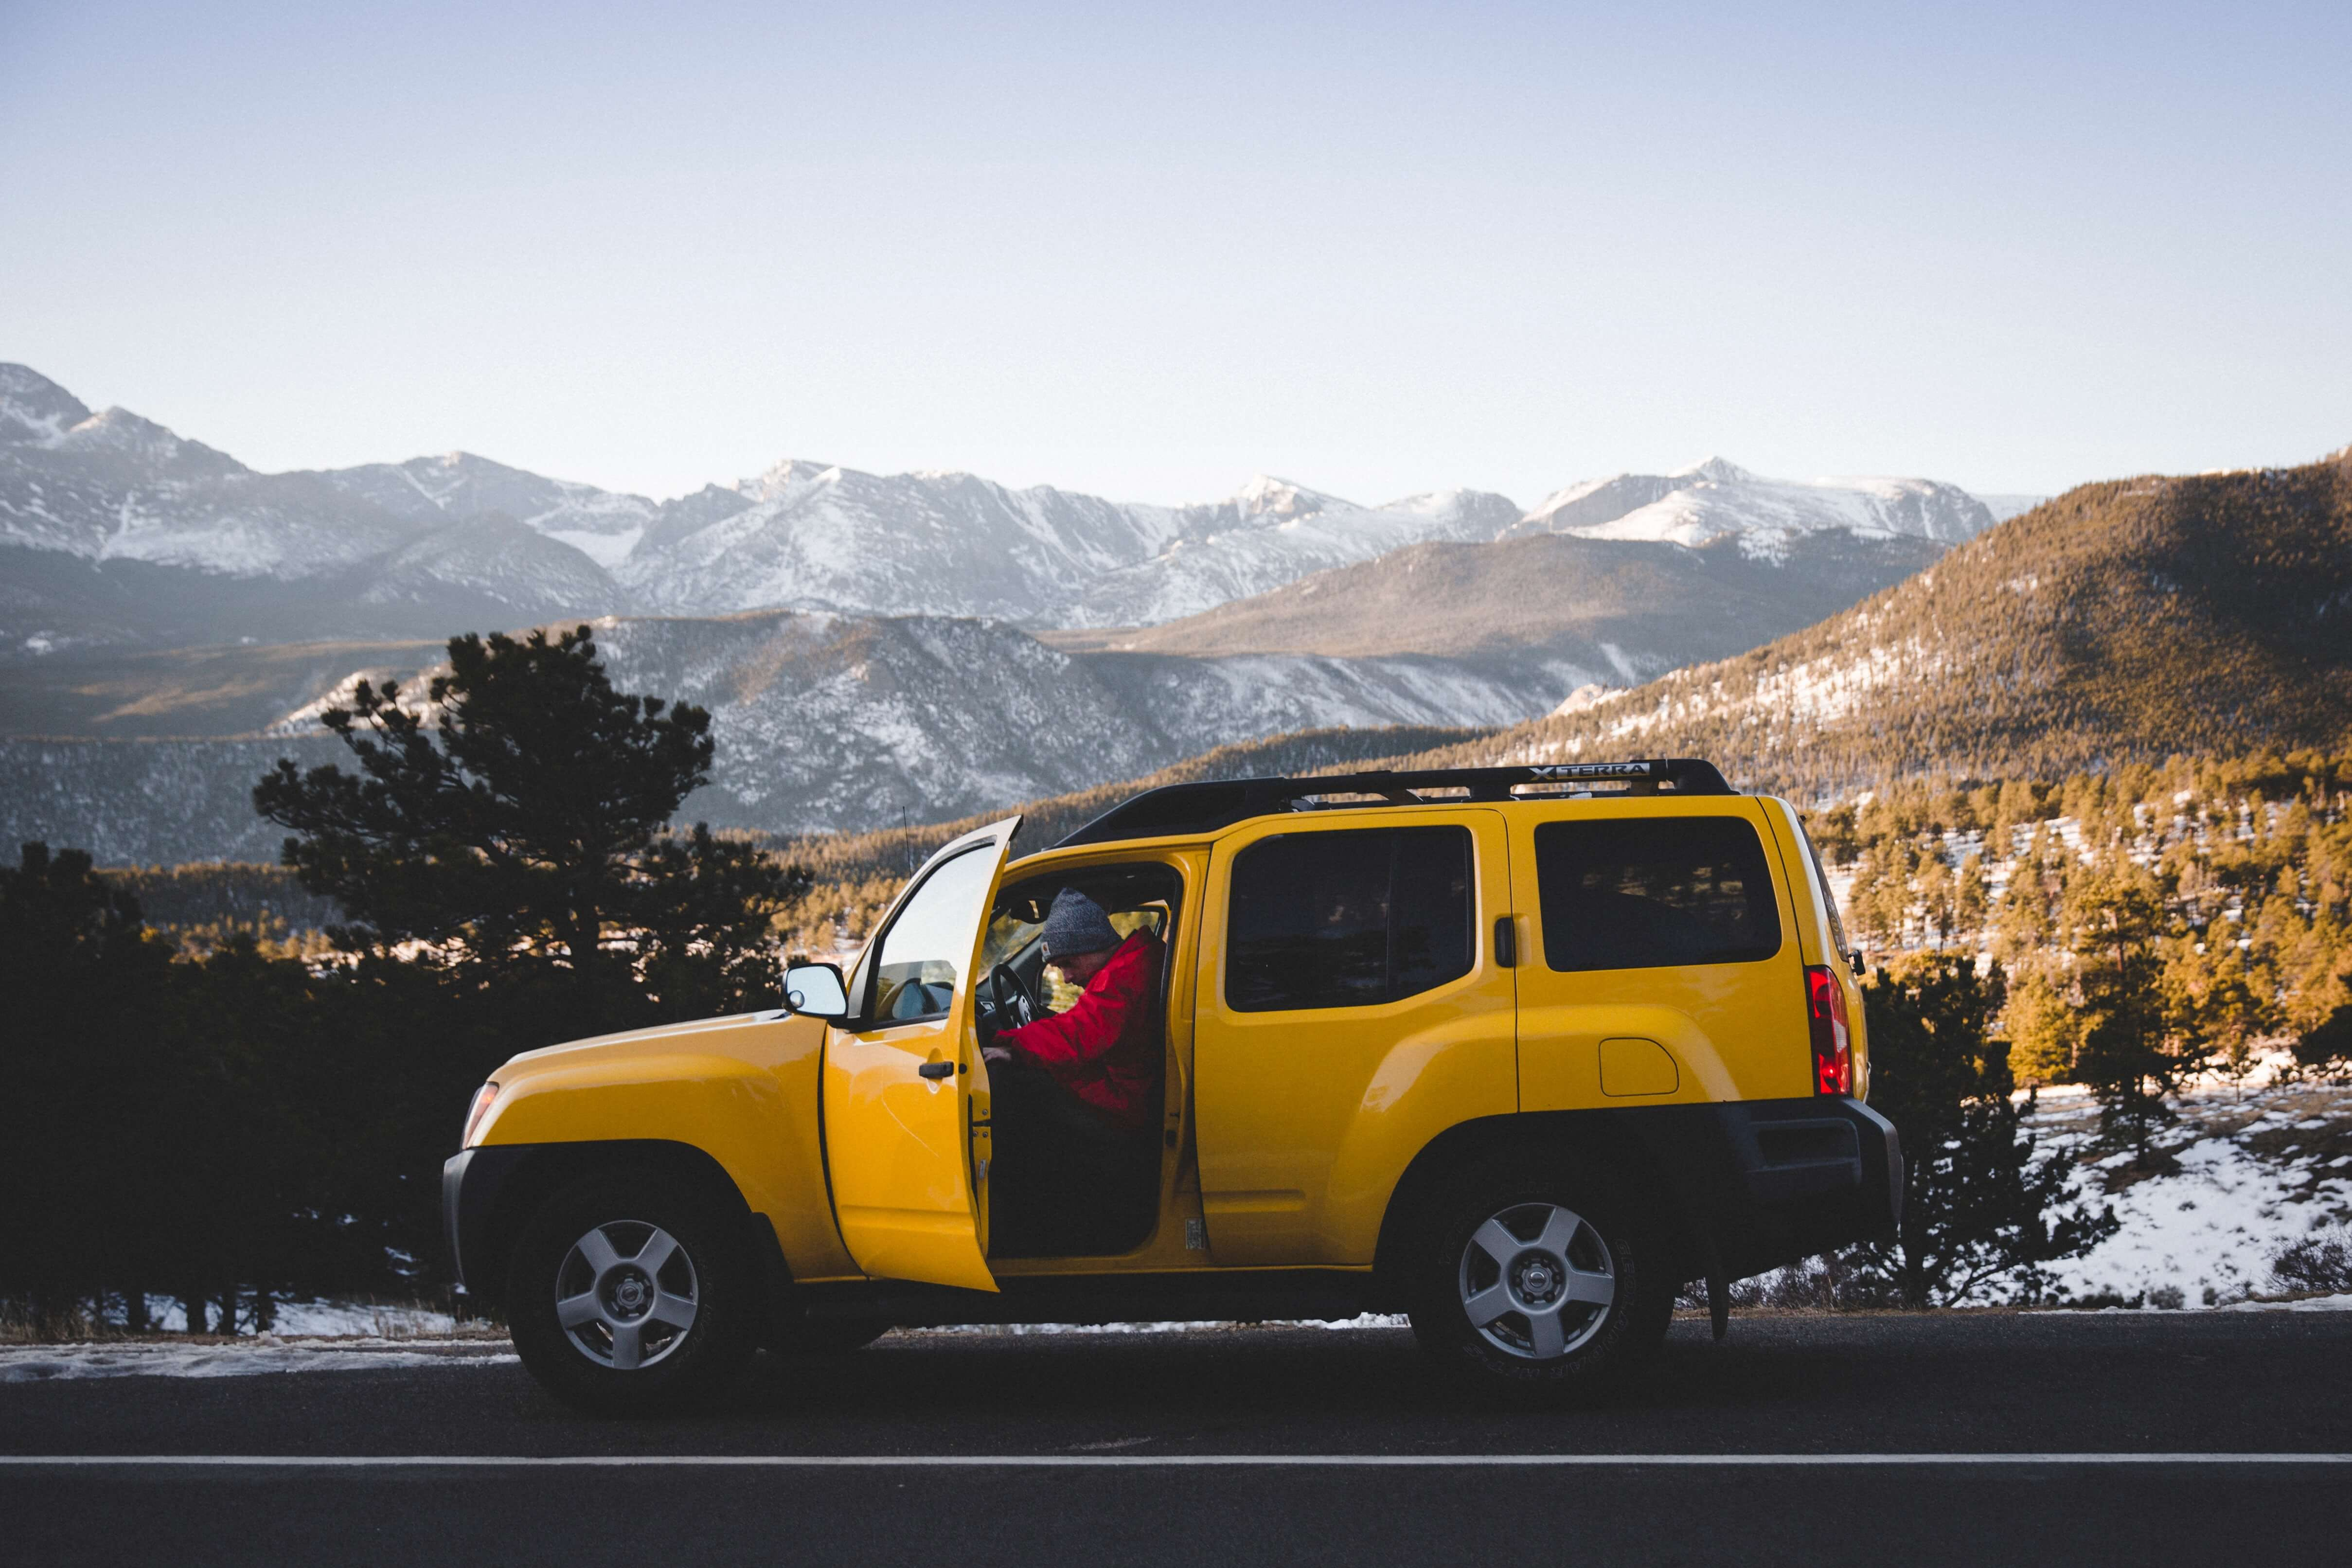 A family in a yellow SUV parked by the mountains